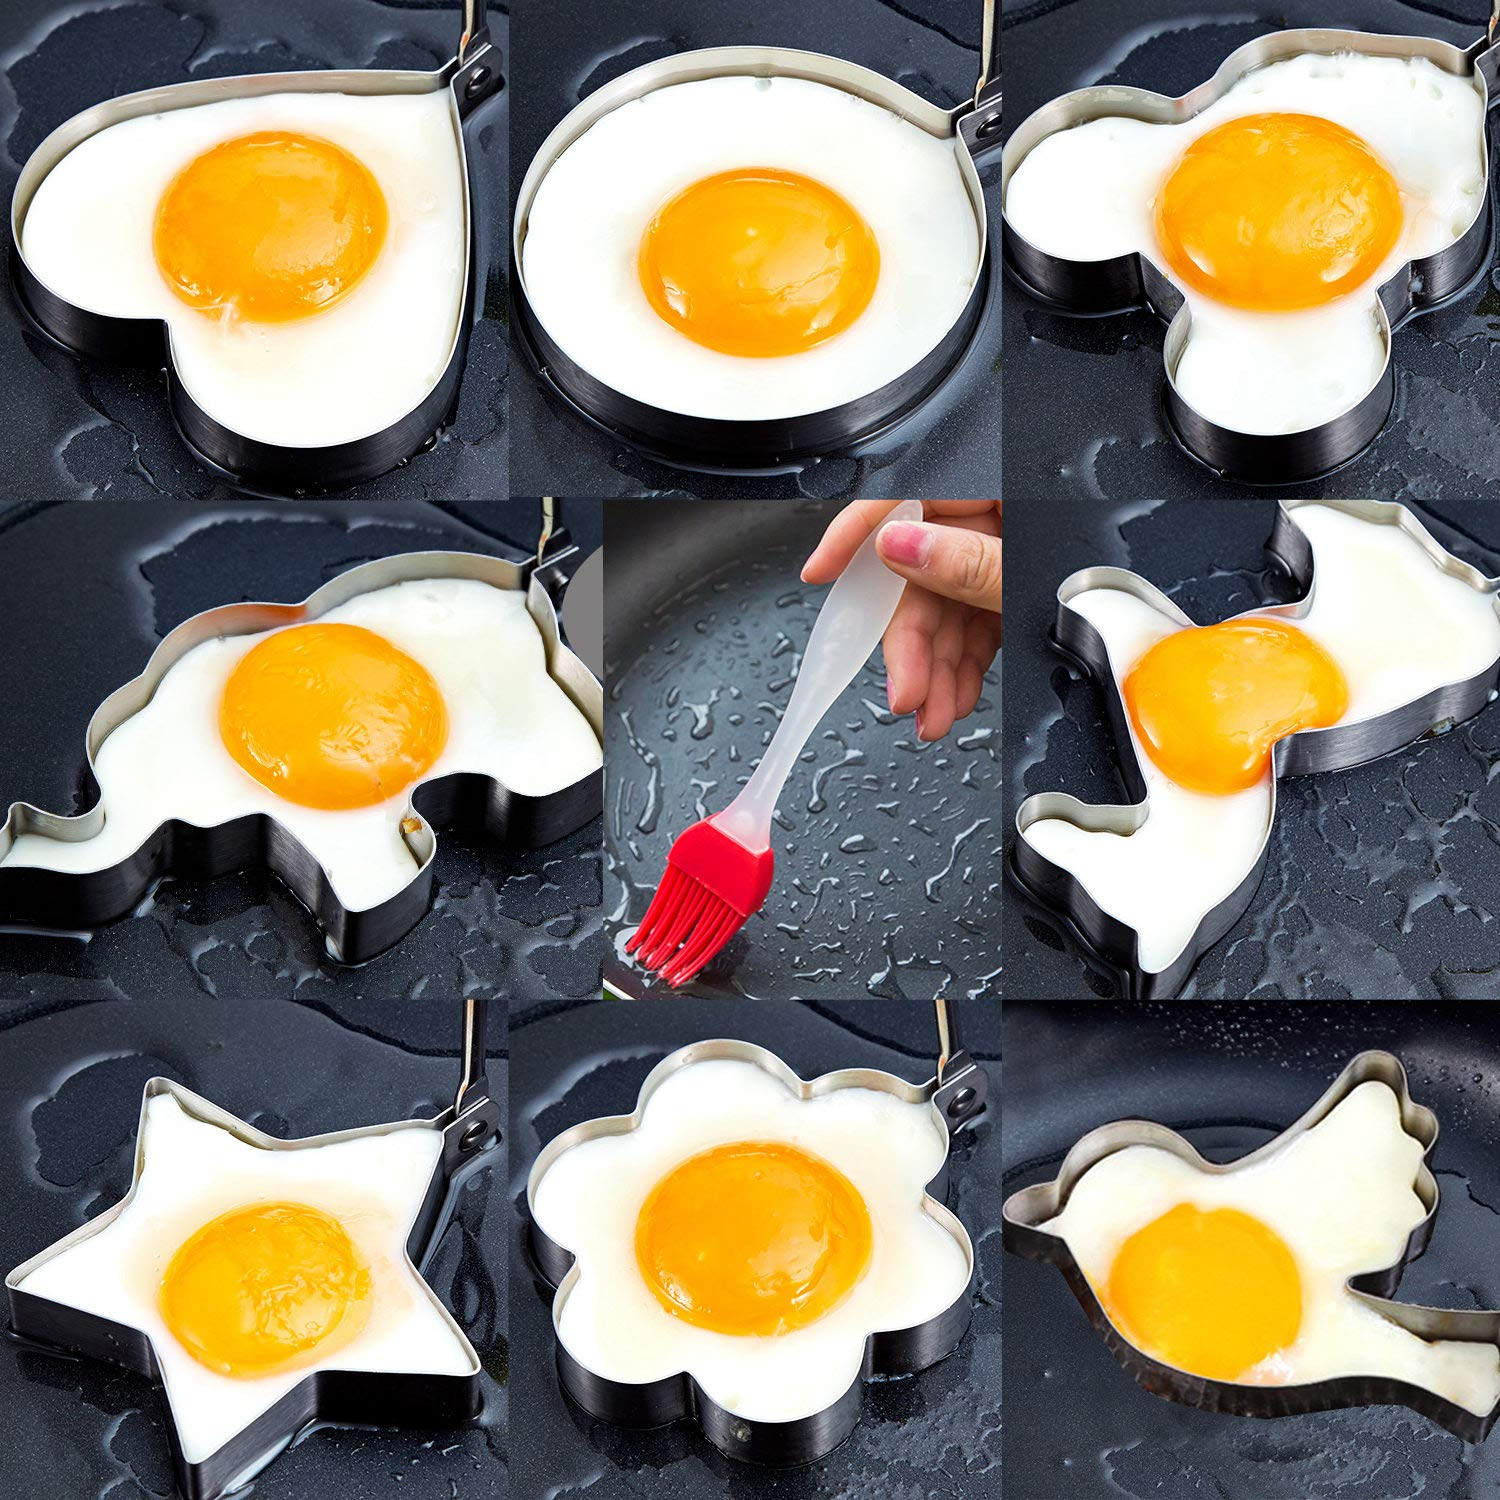 Egg poacher- 8pcs Different Shapes Stainless Steel Fried Egg Molds with 1pc Silicone Pastry Brush - Set of 9 by PNBB